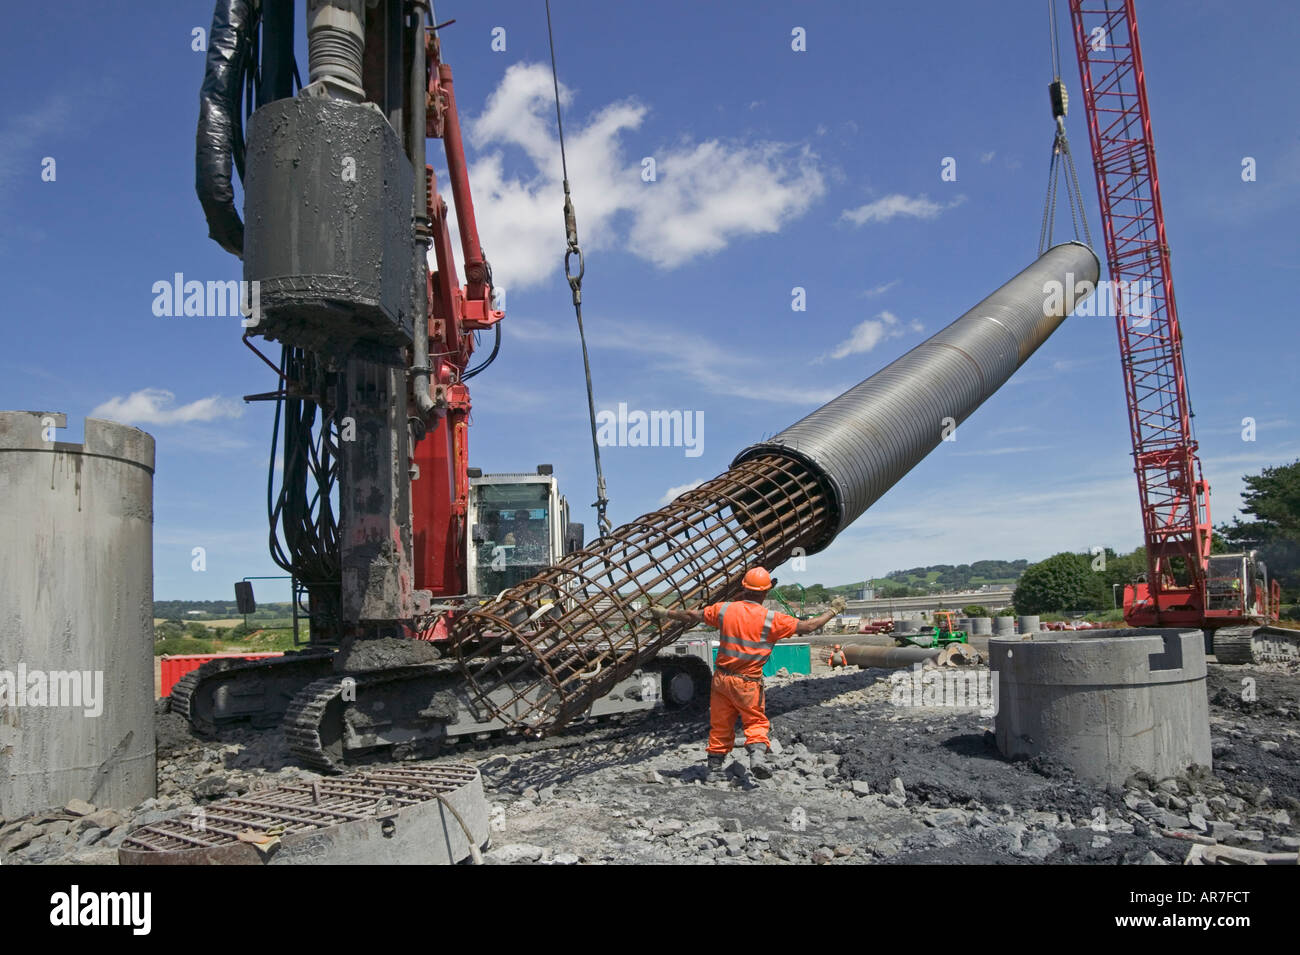 Crane Lifting Steel Reinforced Cage Into An Excavated Pile